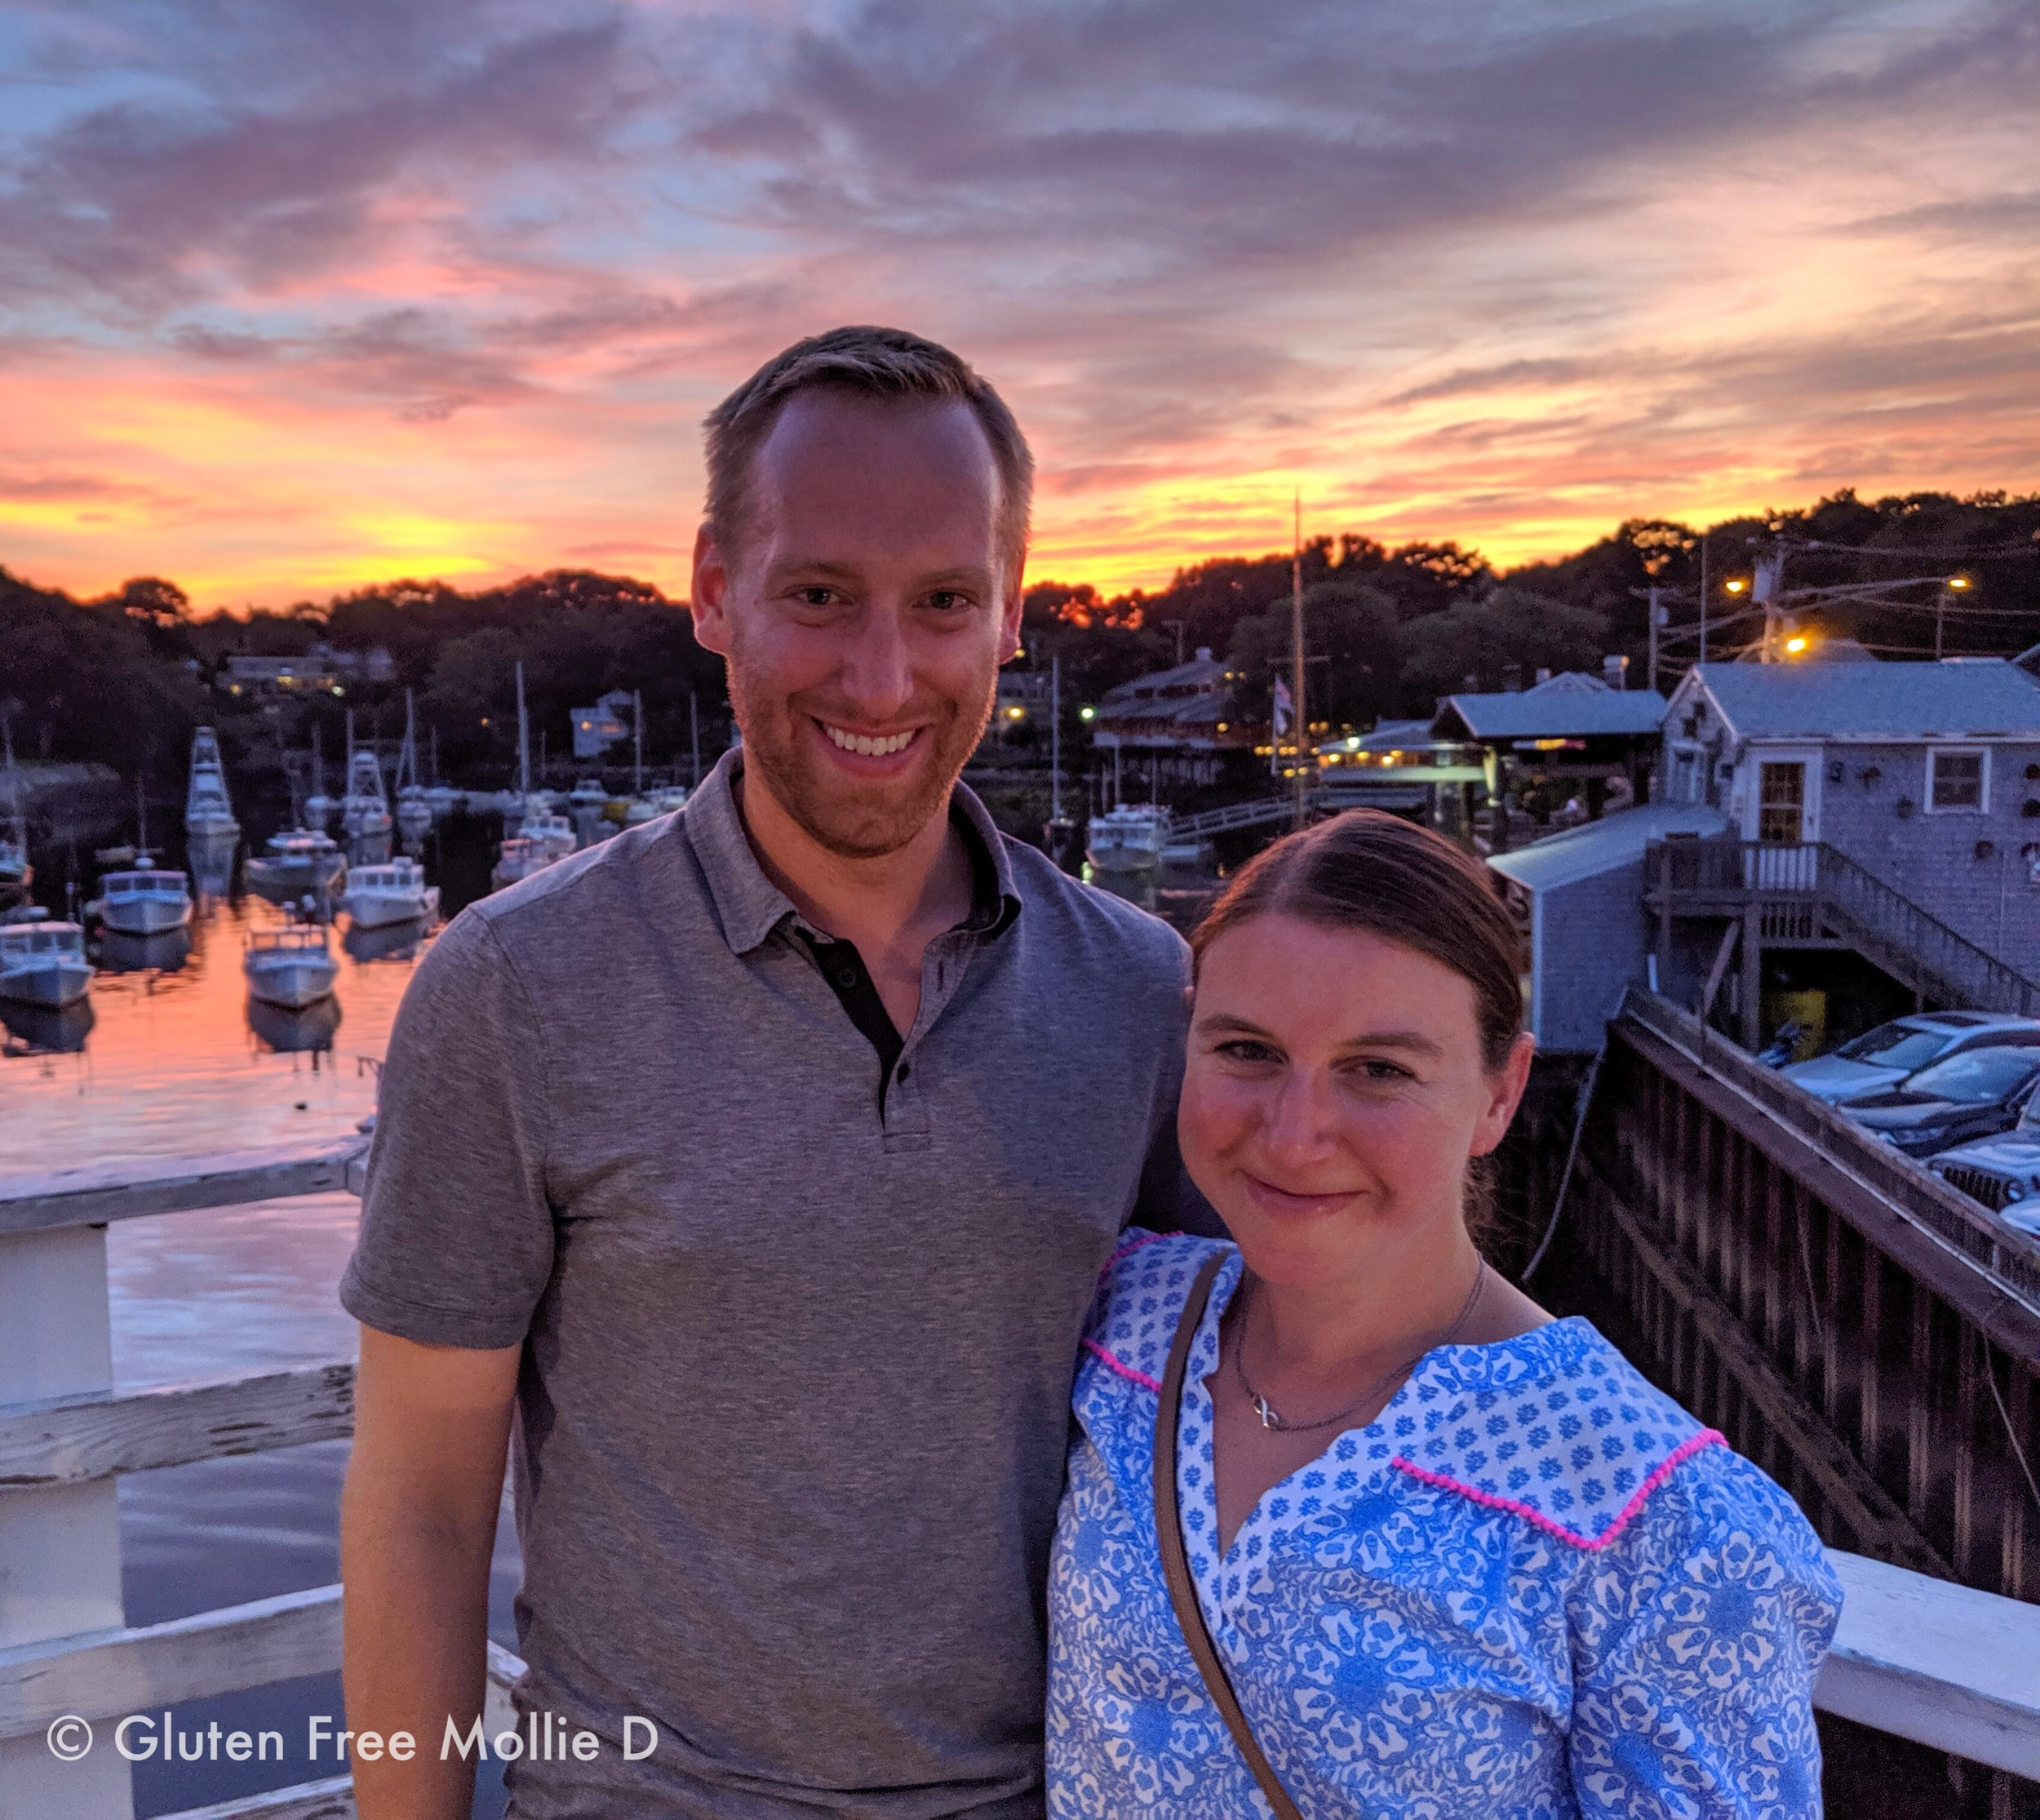 Thank you to the kind stranger who offered to take this photo of us in Maine. Look at that sky! 😍